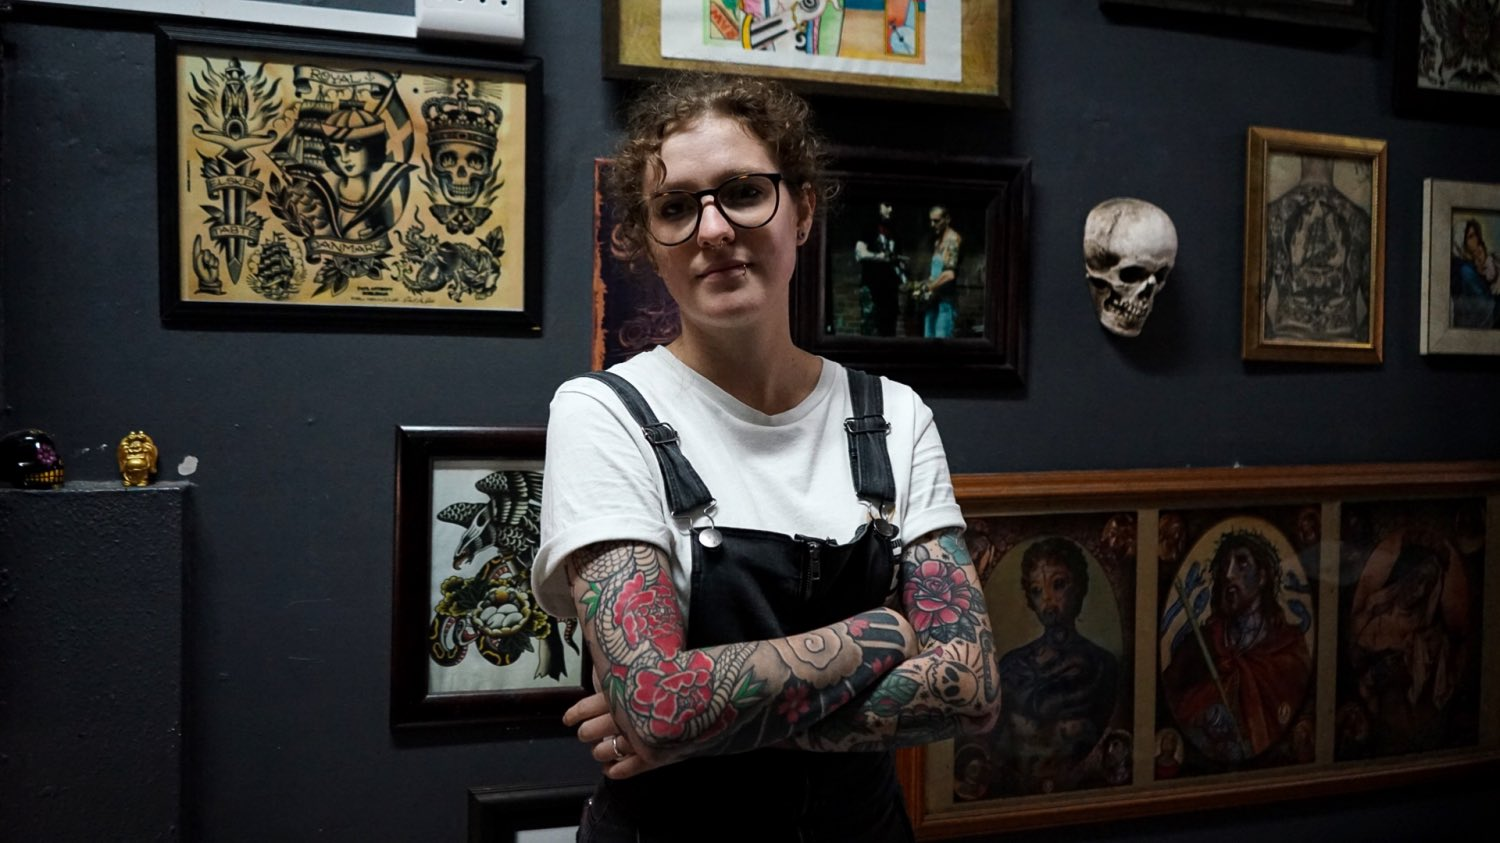 Introducing Shayleigh Roelofse as our featured tattoo artist